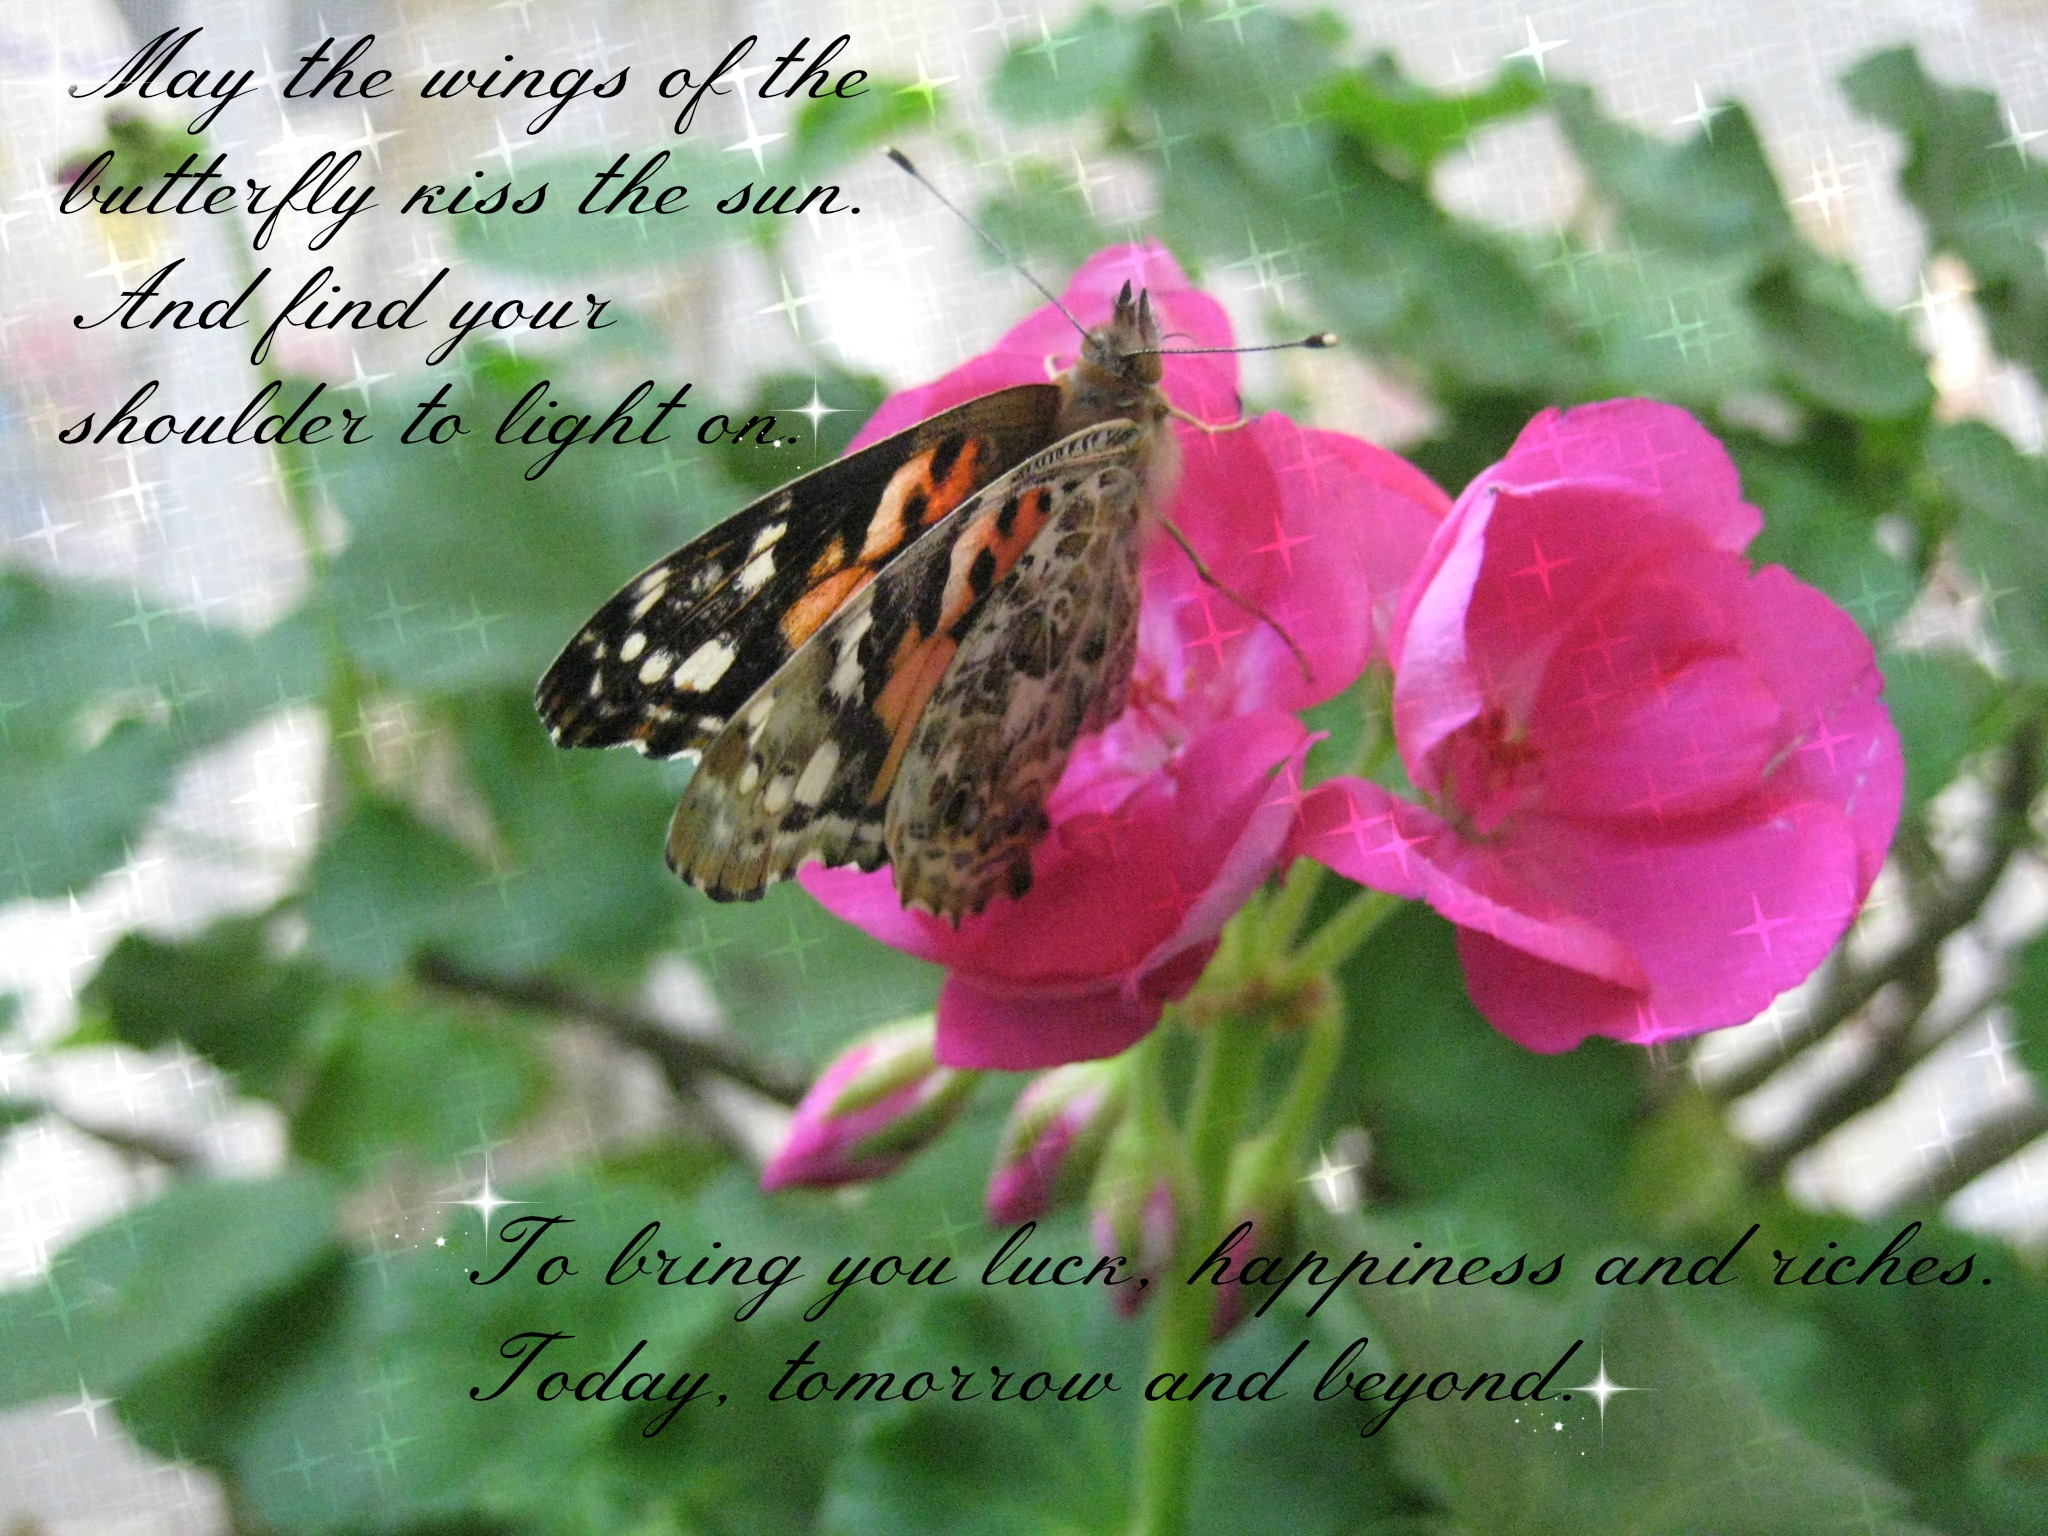 Butterfly poems and sayings an assortment of poems about butterflies may the wings of the butterfly kiss the sun and find your shoulder to light biocorpaavc Image collections